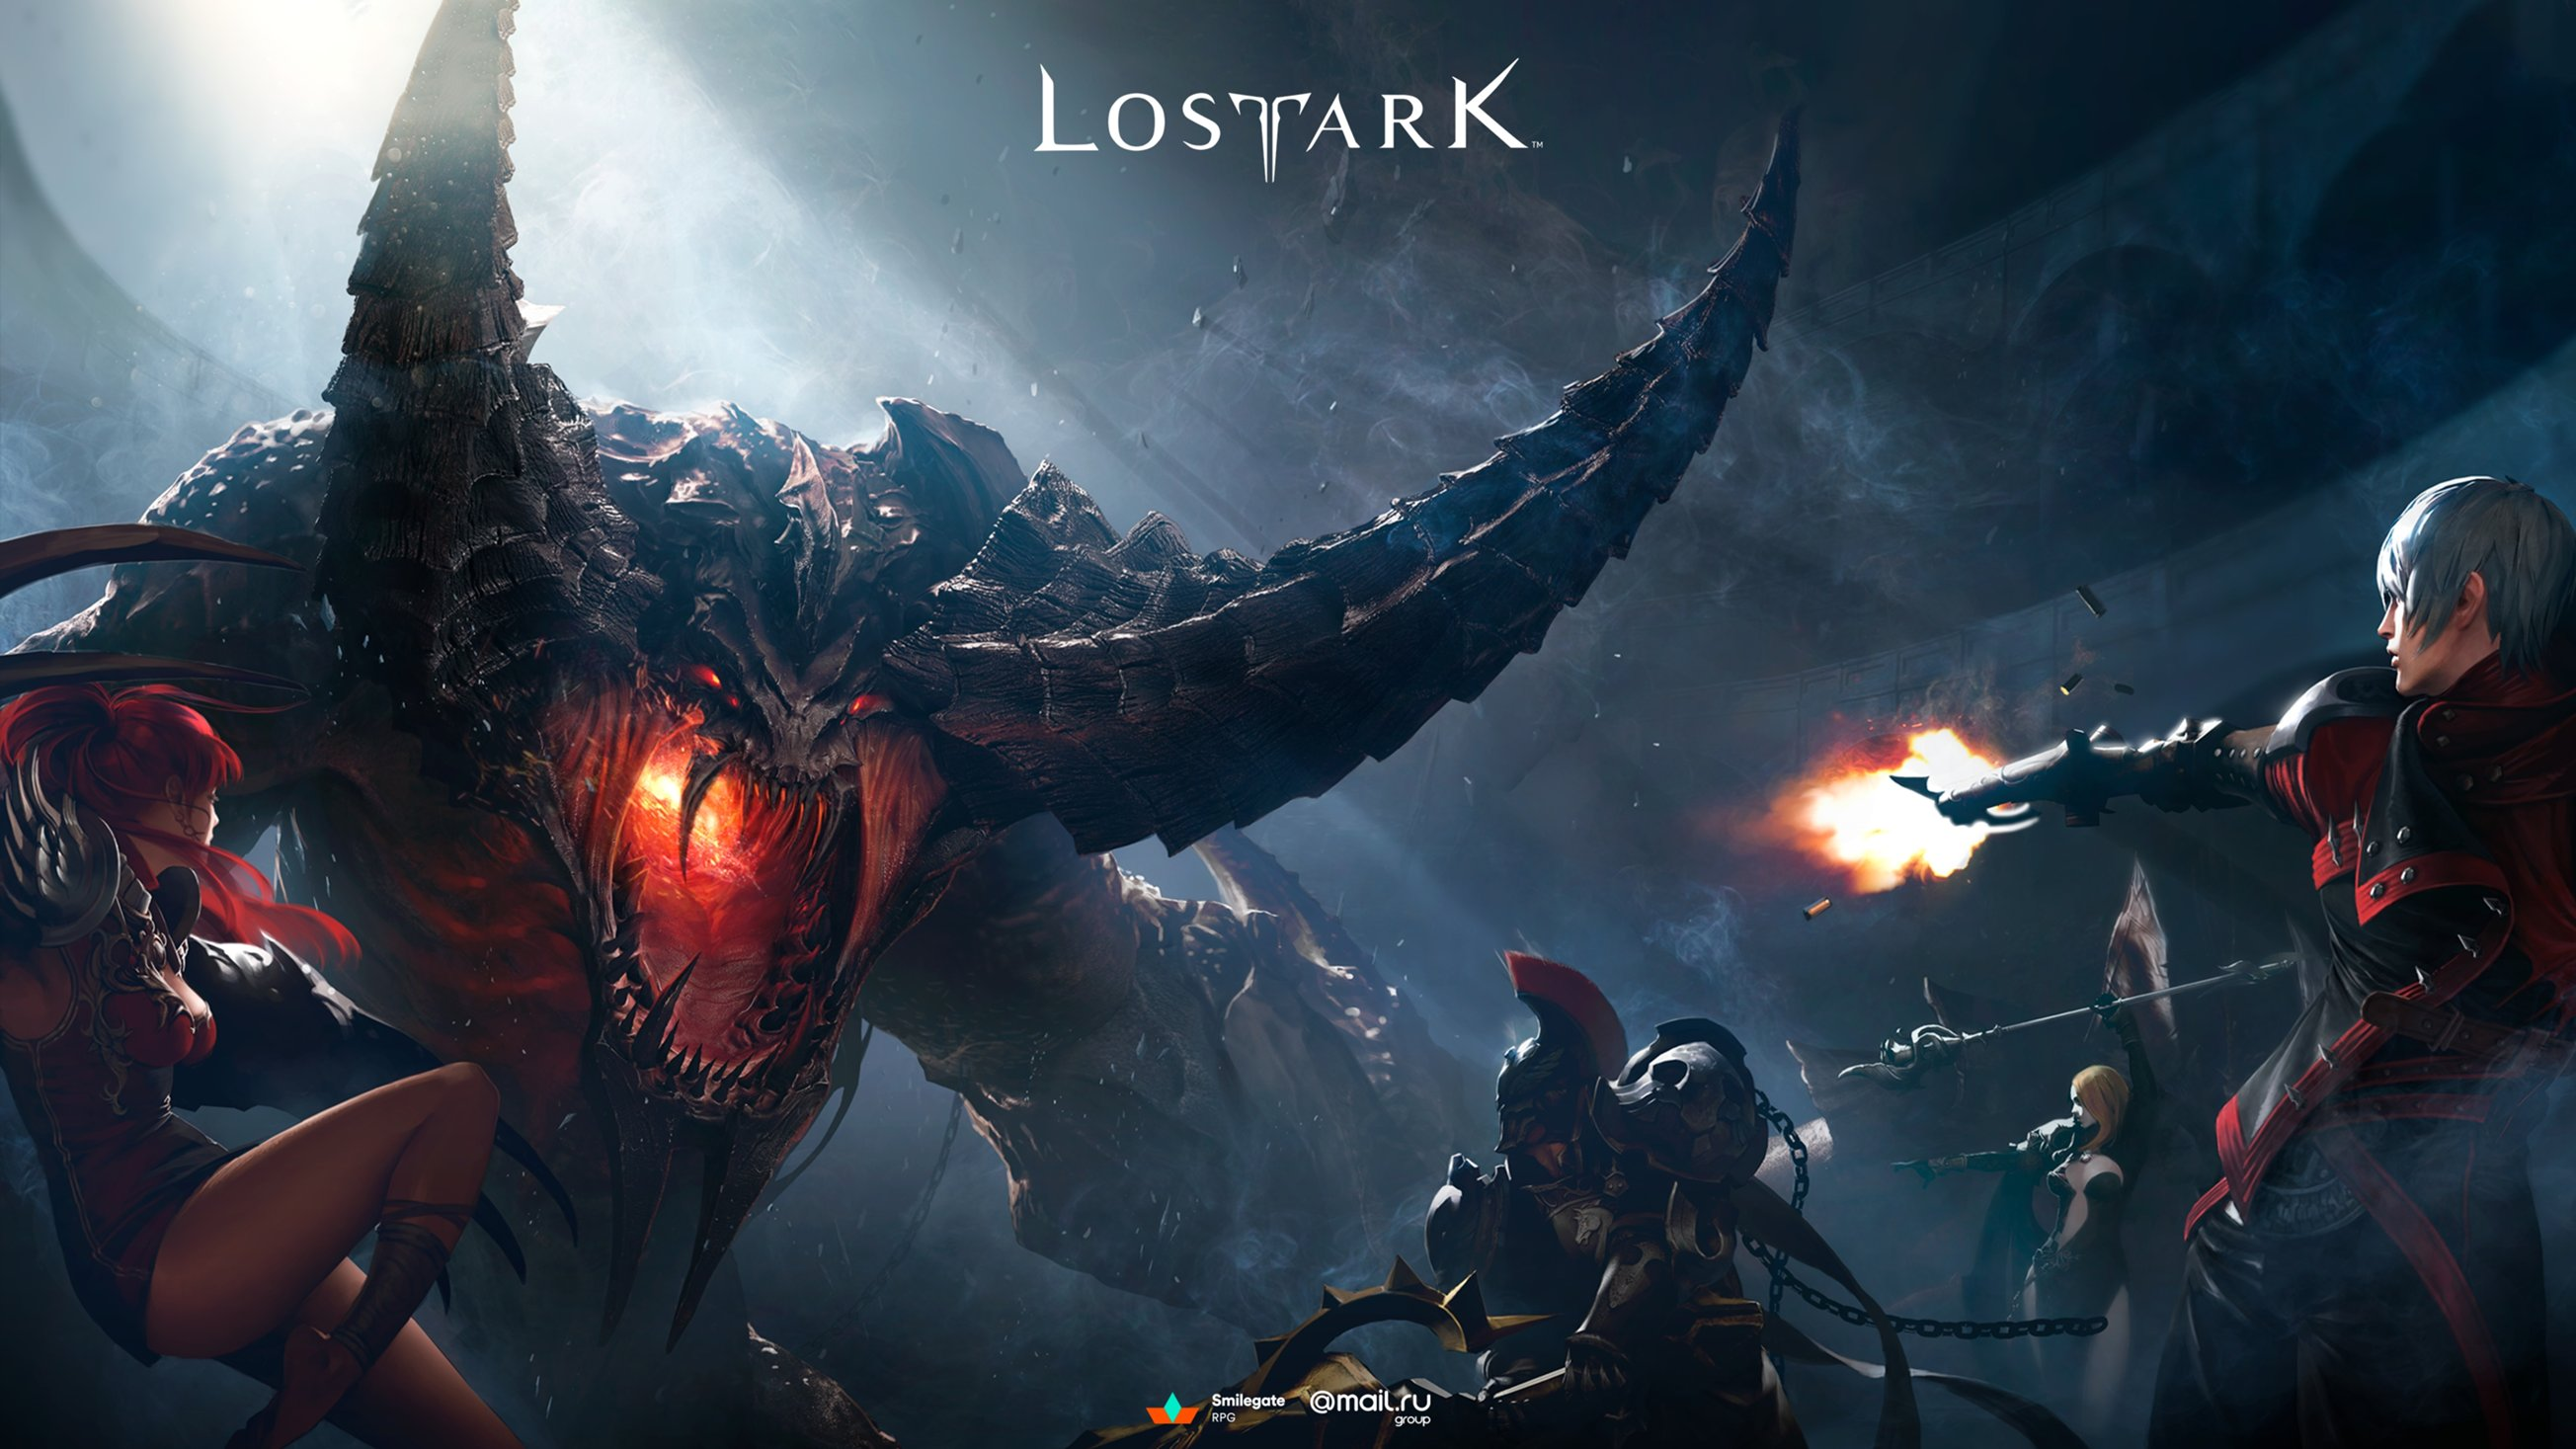 Издателем Lost Ark в СНГ стала Mail.Ru Group